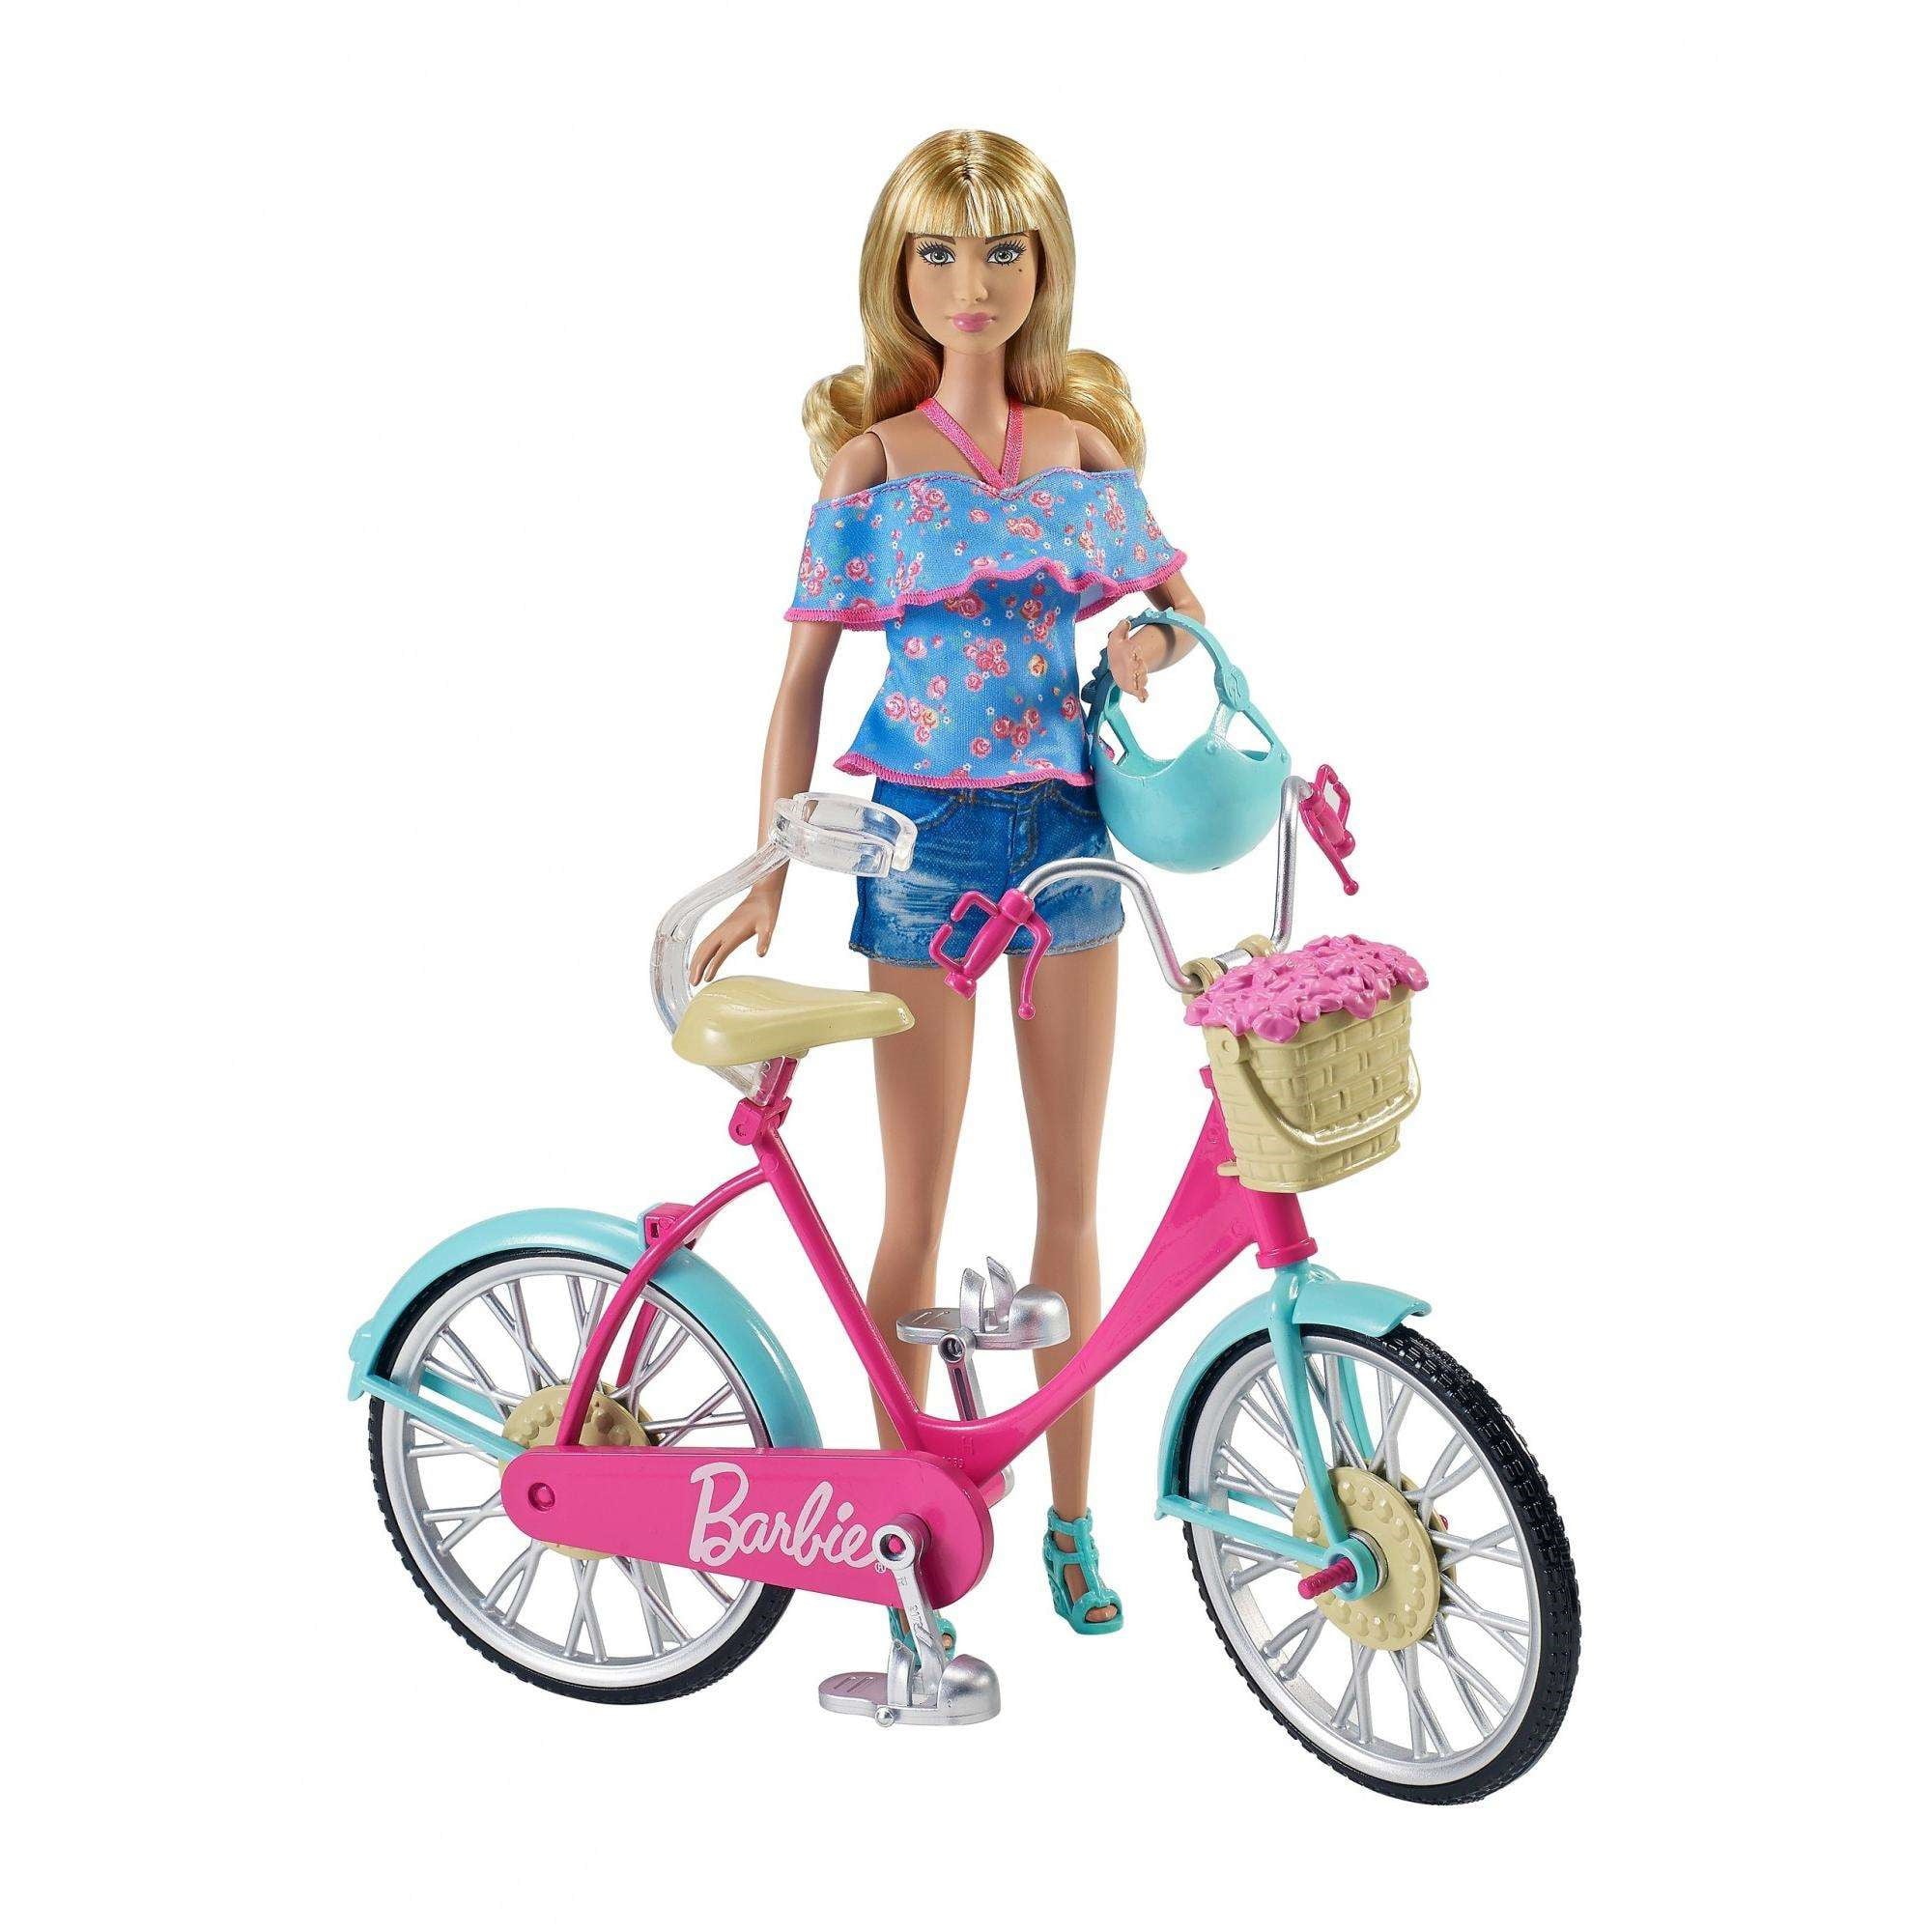 Fashion Doll Bike Accessories Toy Play House Plastic Bicycle Toy# P#1